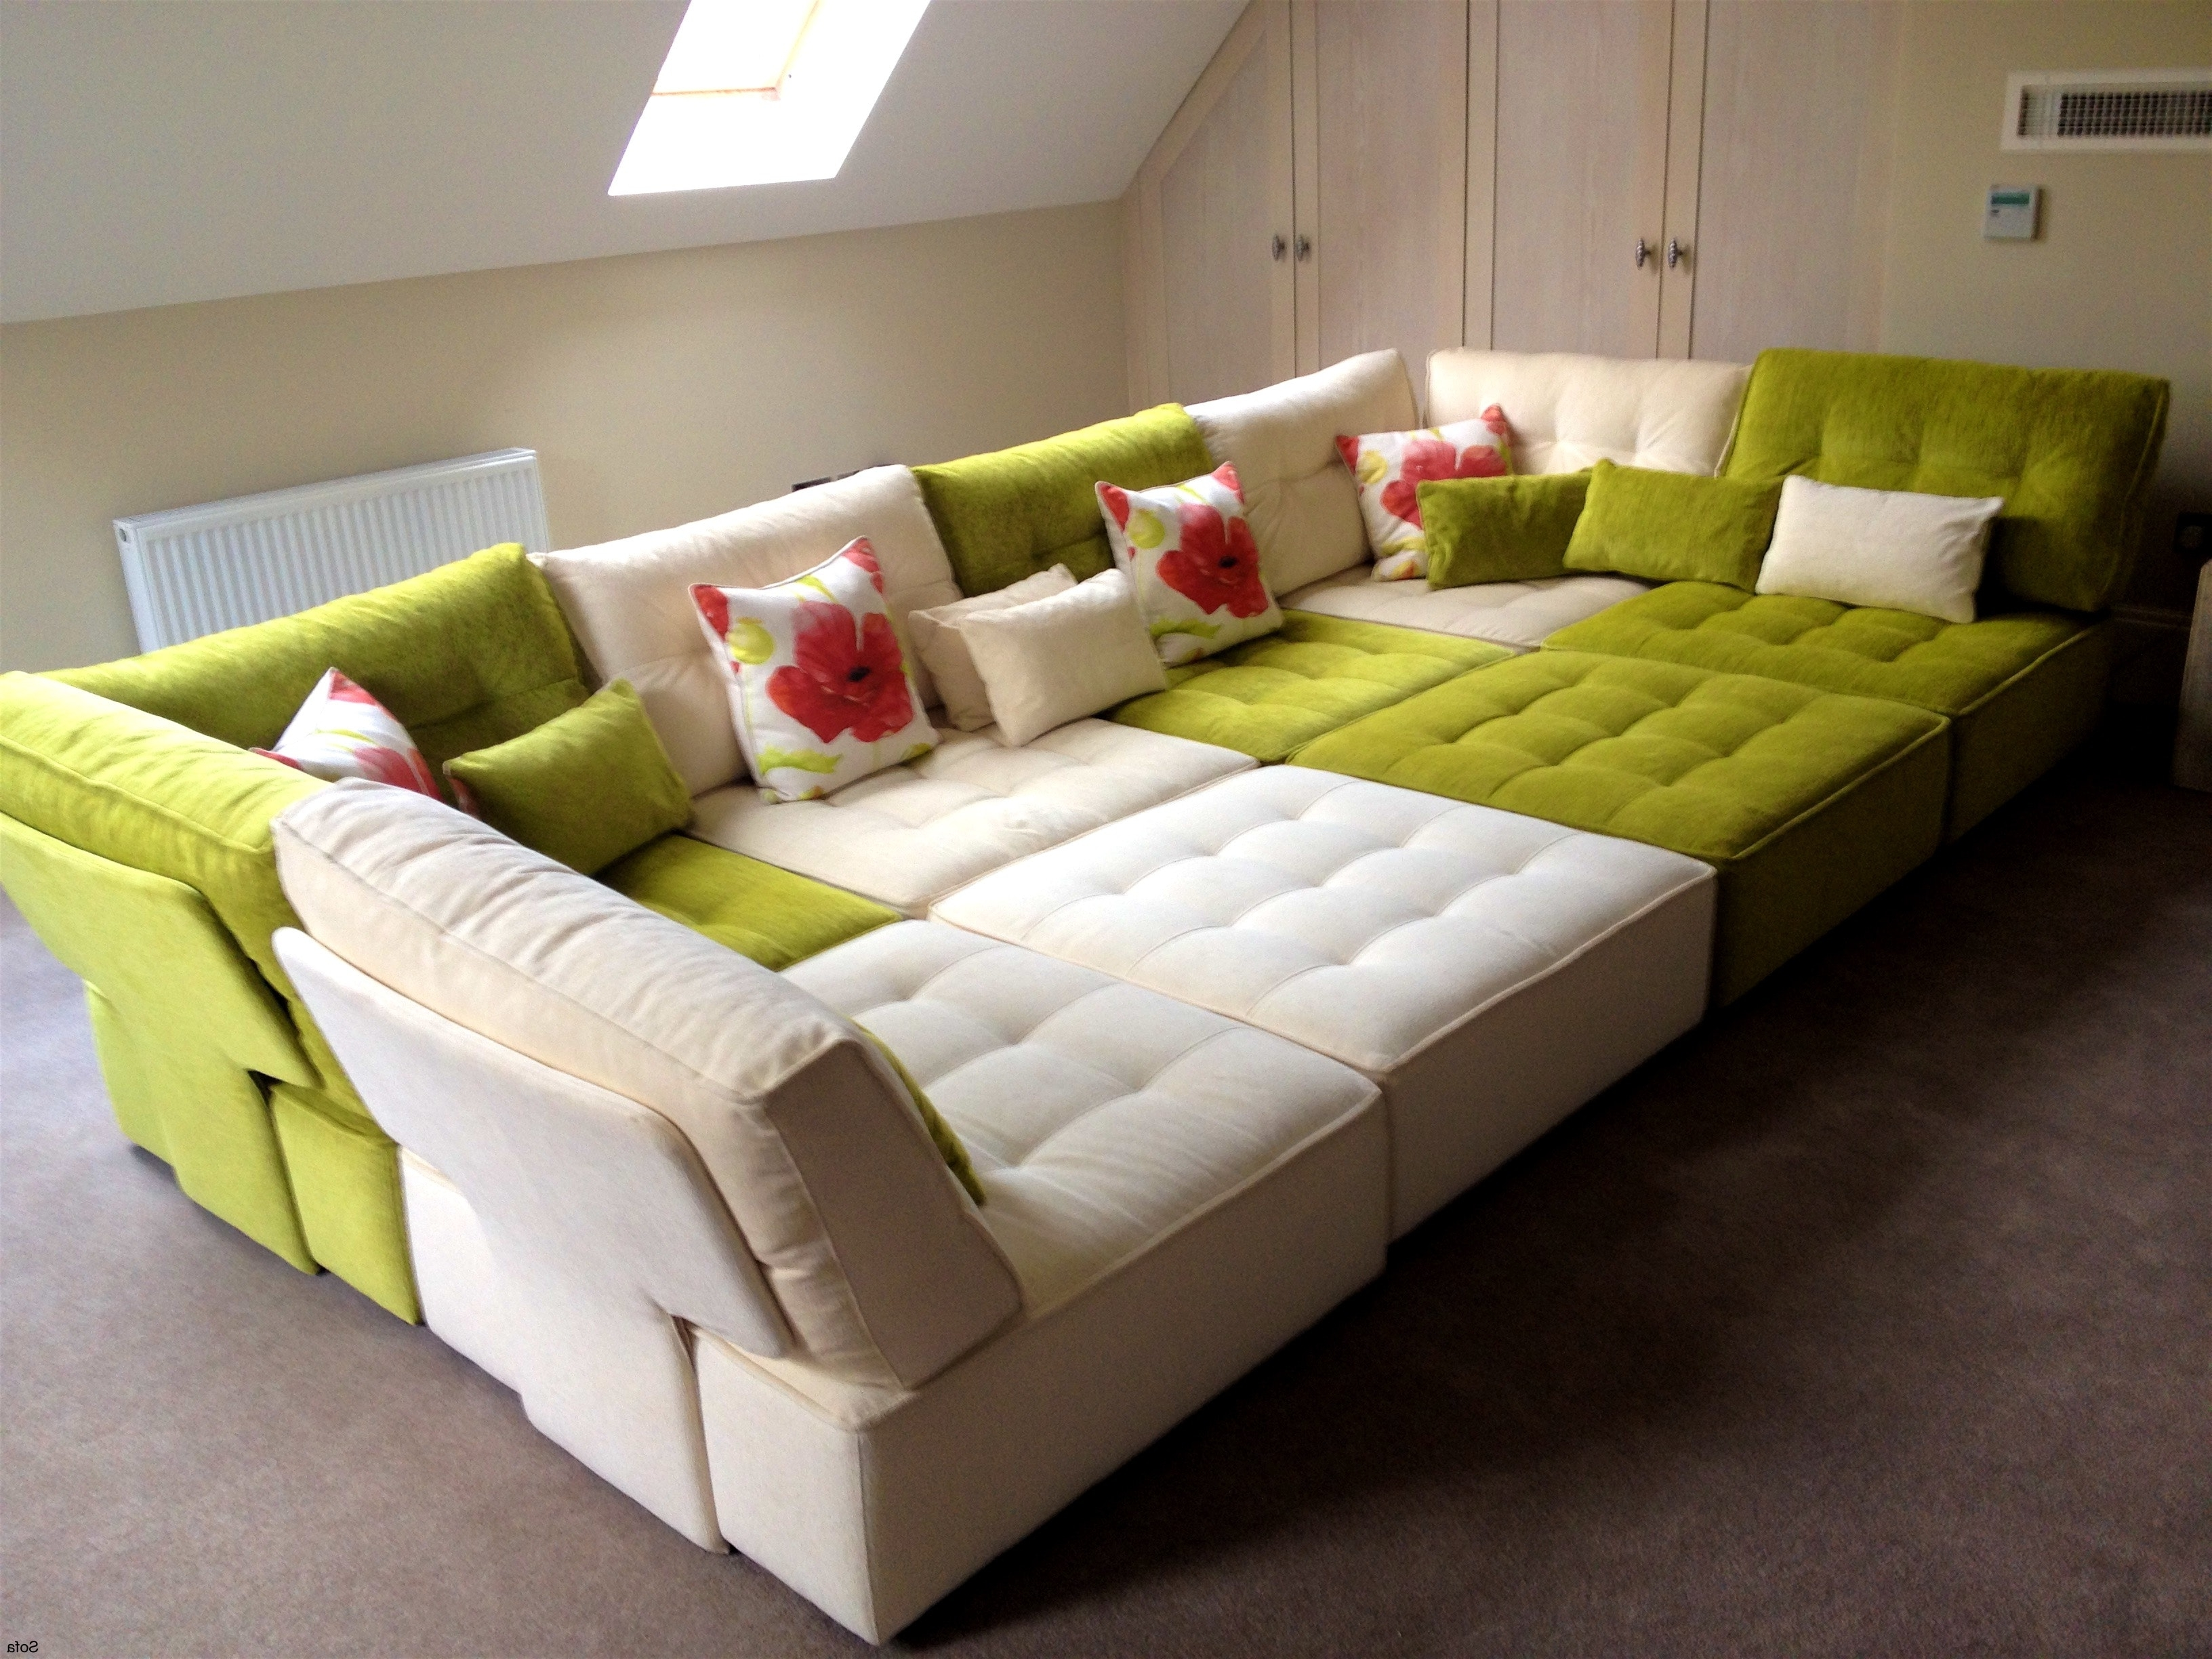 Fashionable Floor Cushion Sofa – Mforum Within Floor Cushion Sofas (Gallery 4 of 20)